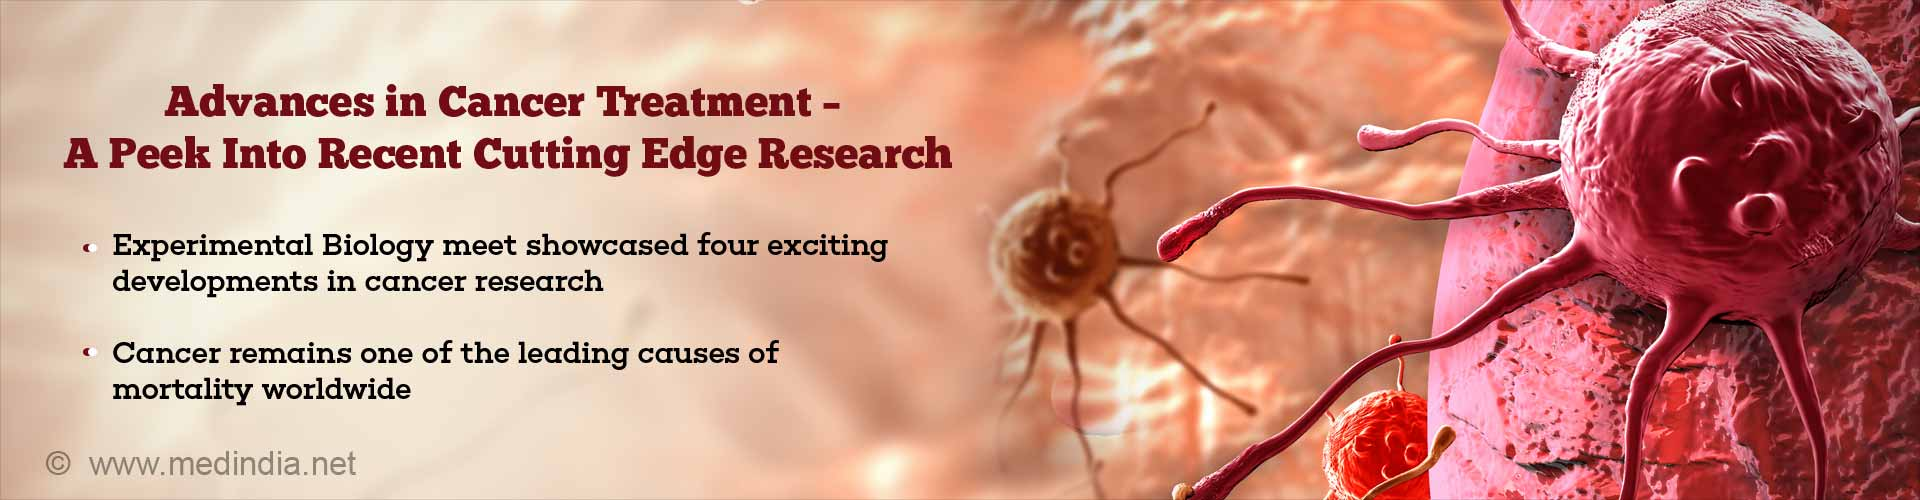 Latest Research Offerings on Novel Treatment Options For Various Cancers